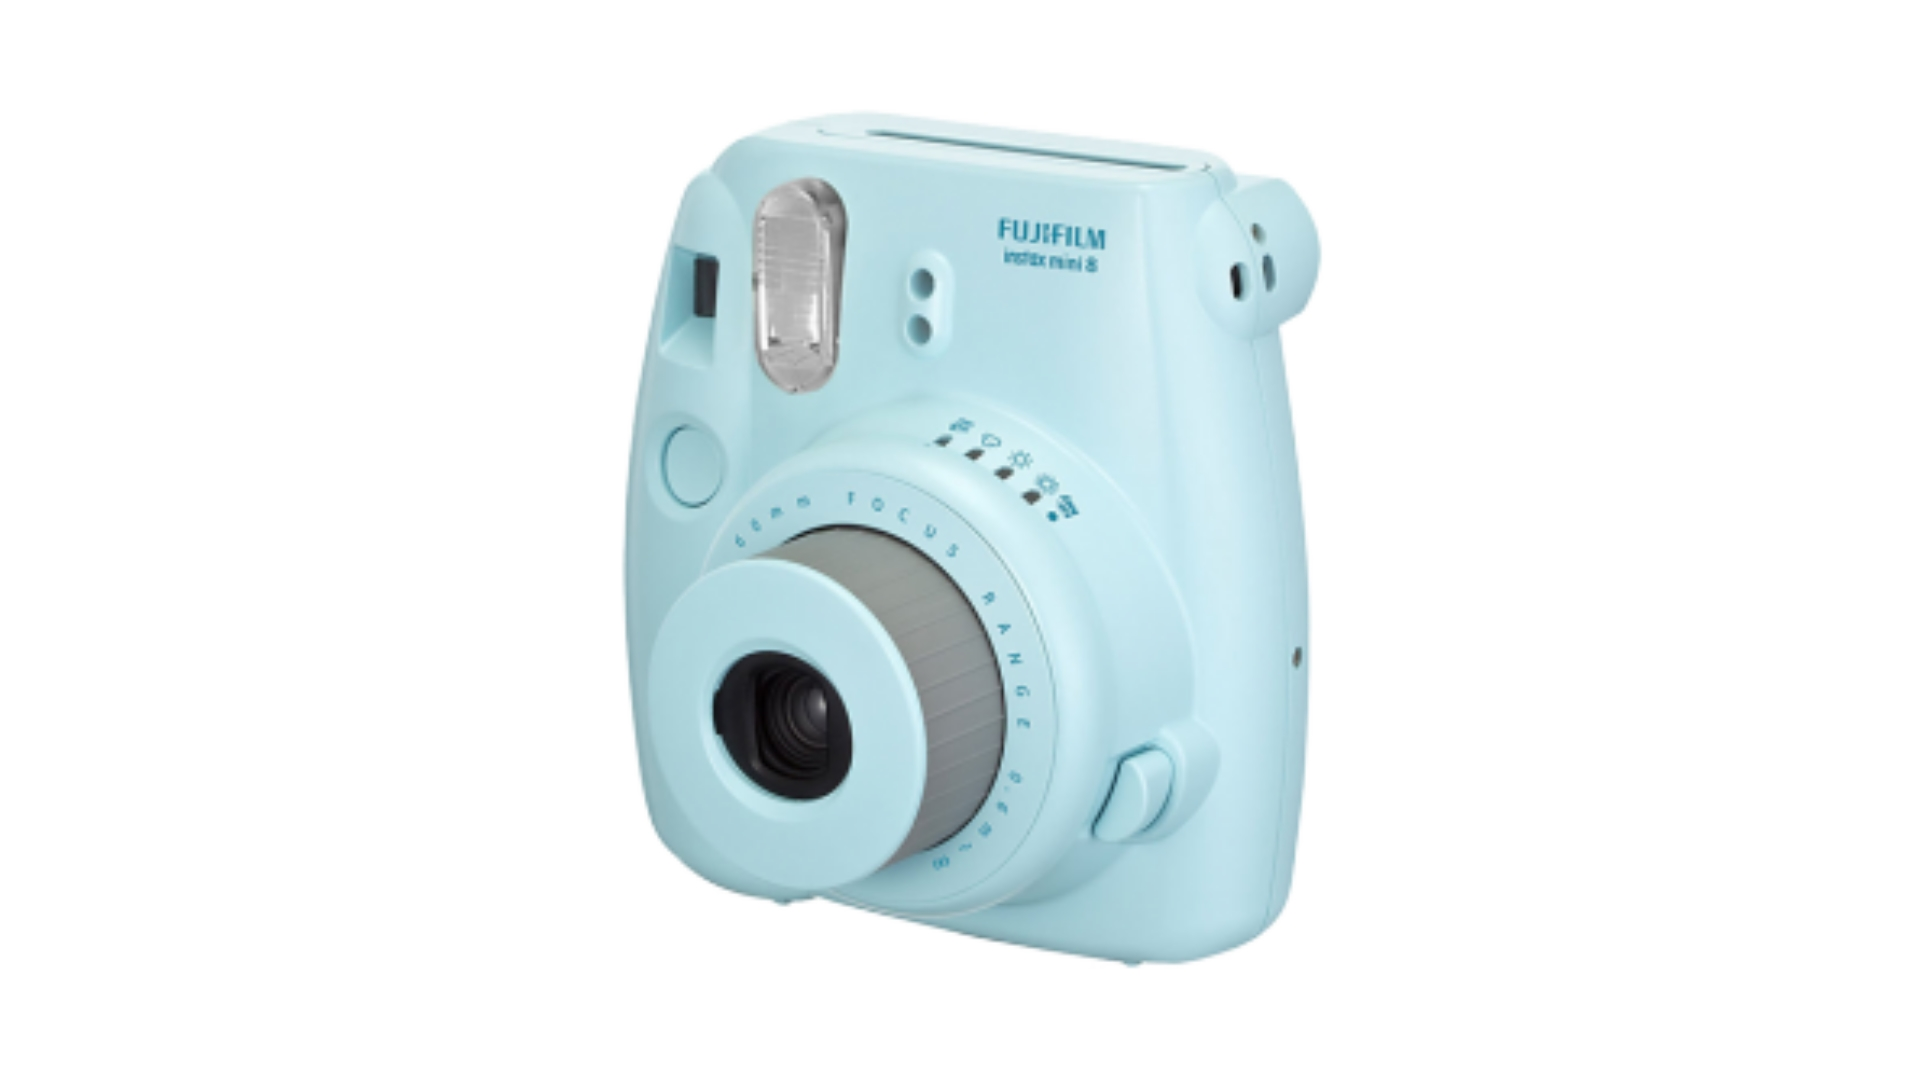 Fujifilm Instax Mini 8 prices